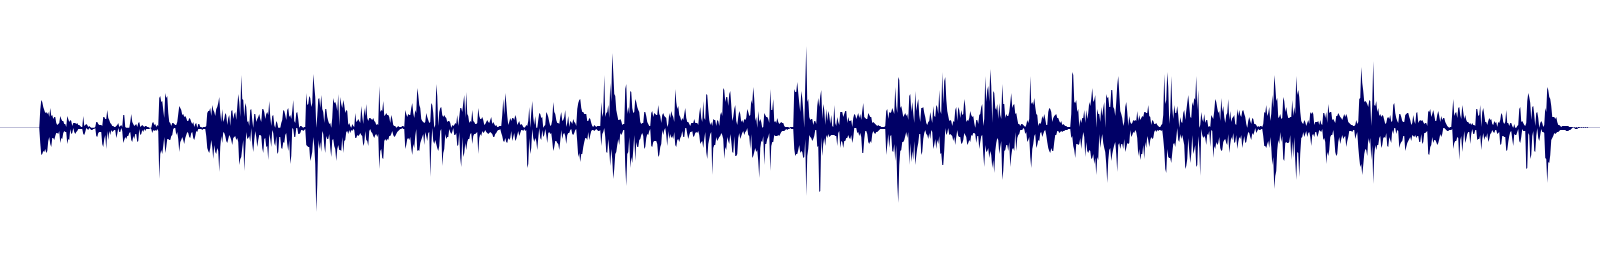 waveform of track #130793